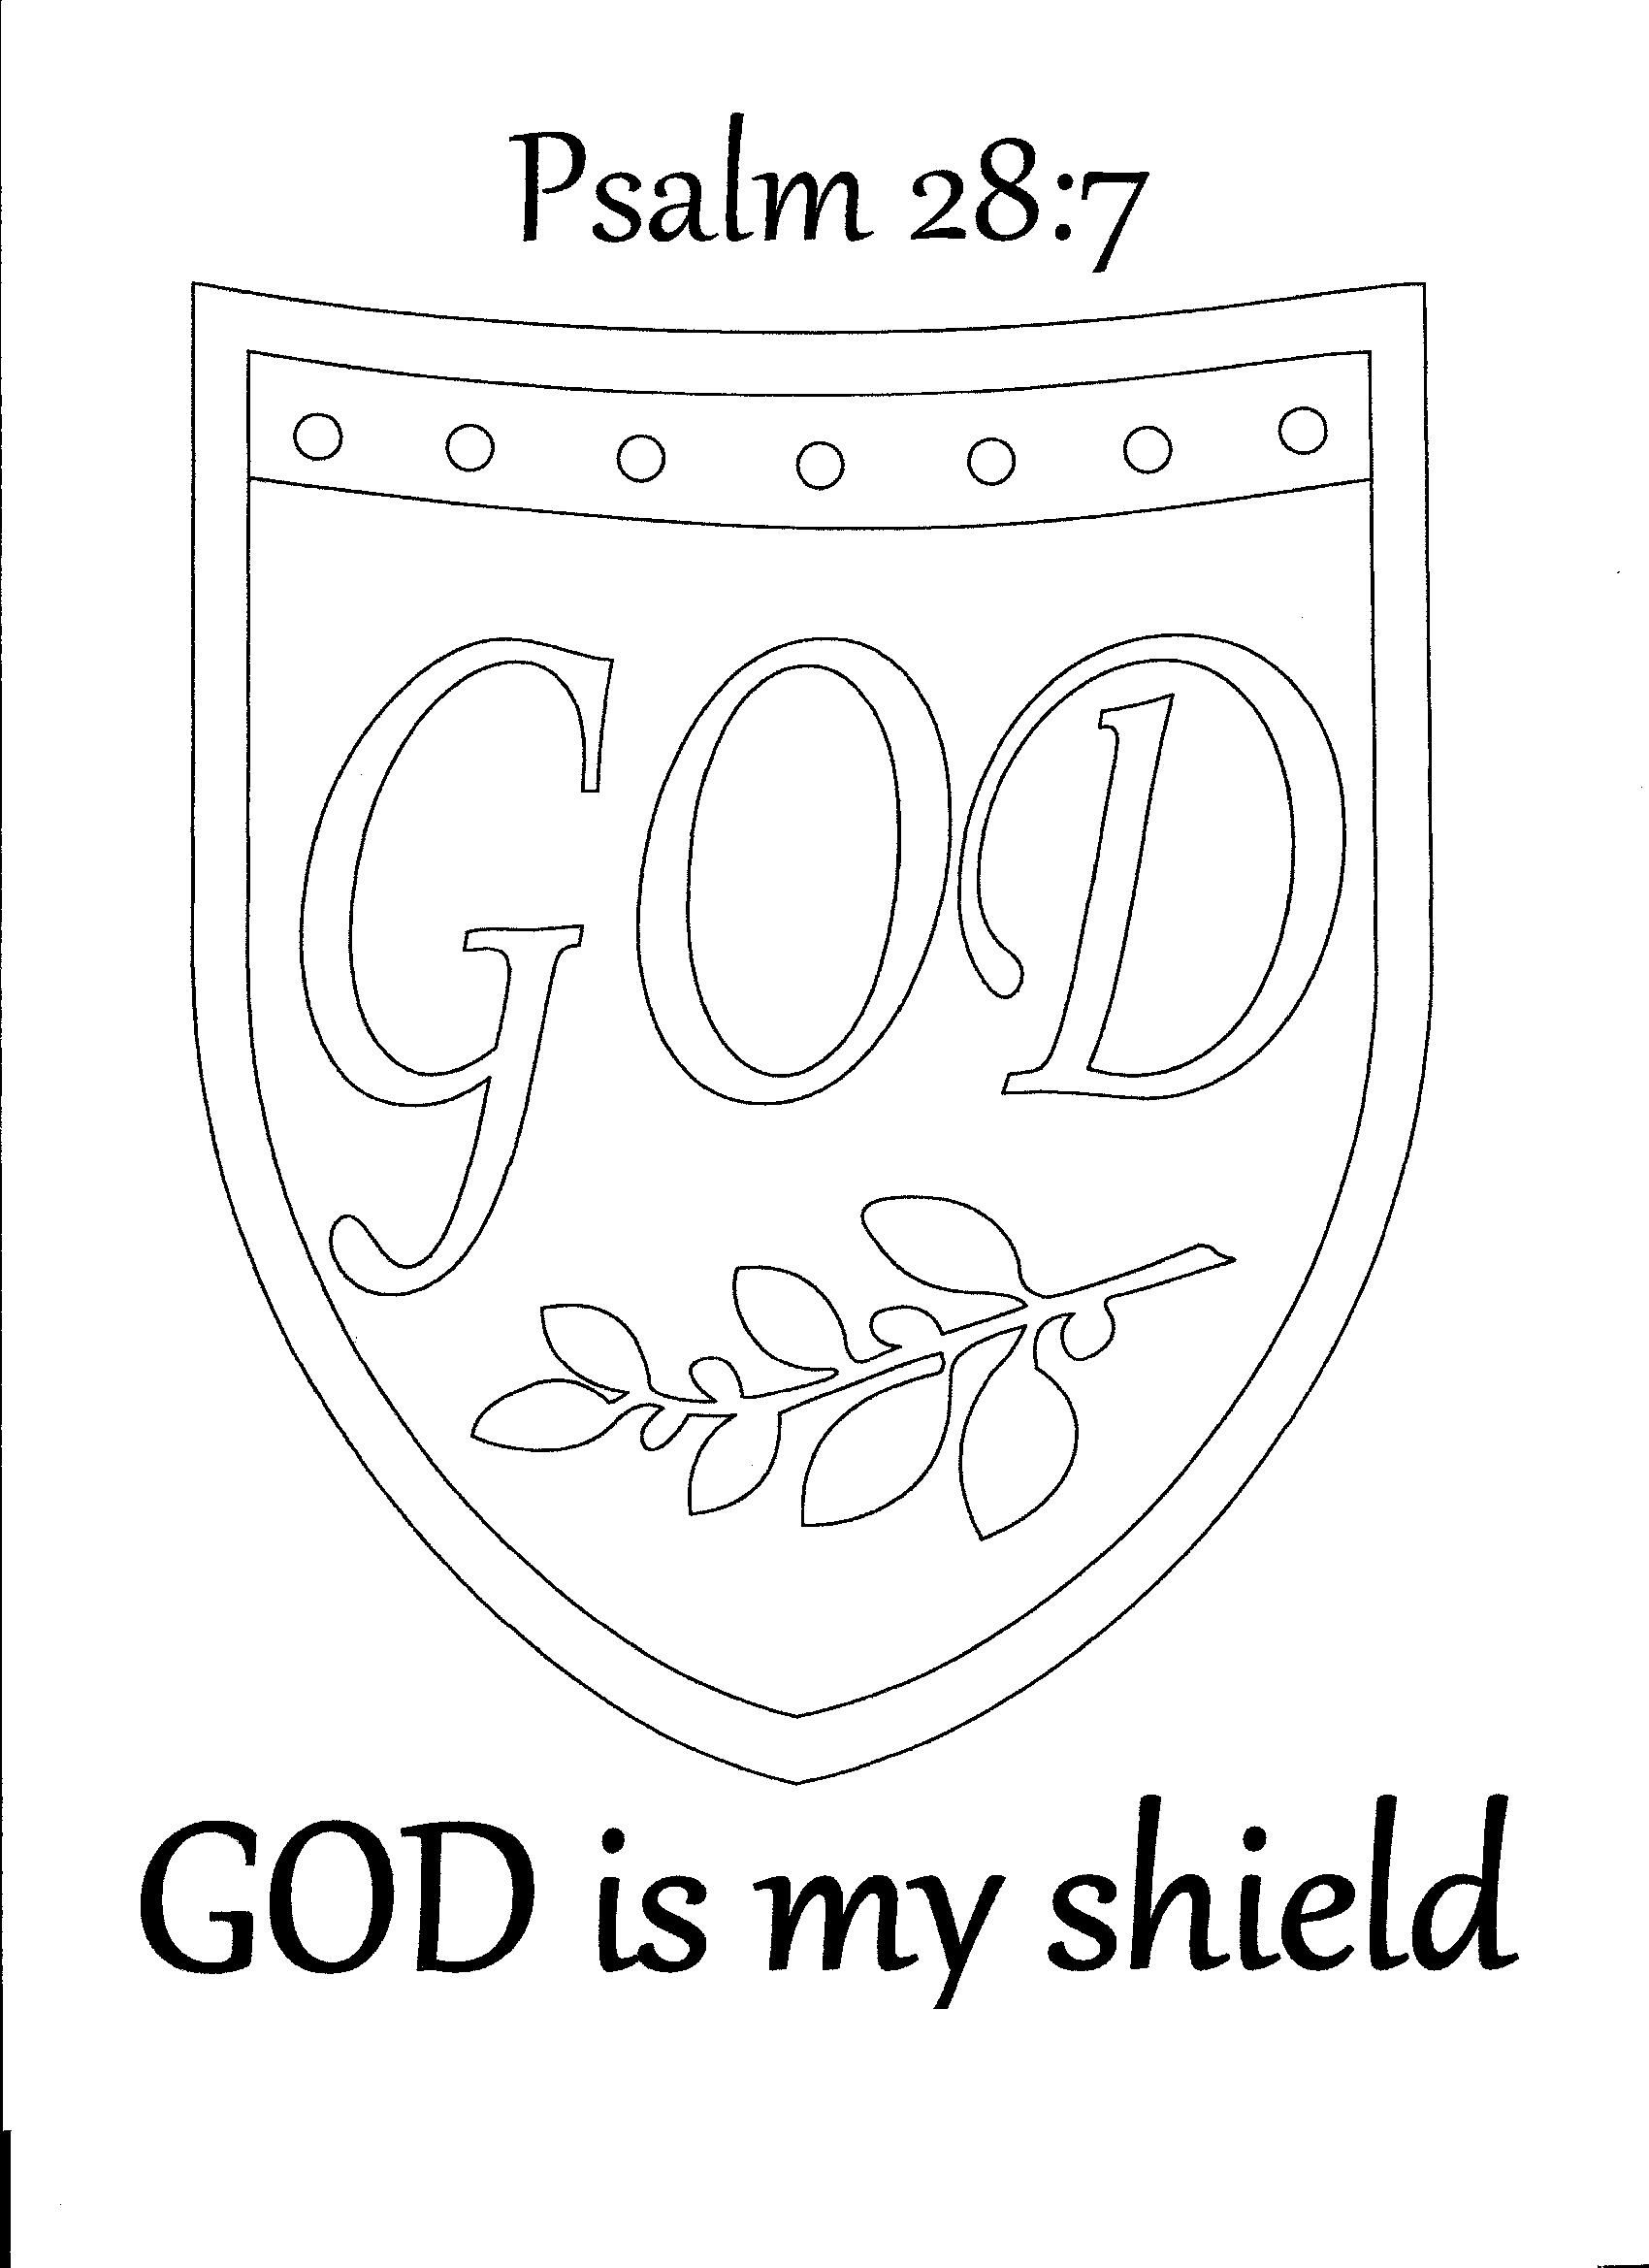 God is my shield. Psalm 28:7 coloring page | Sunday School ...